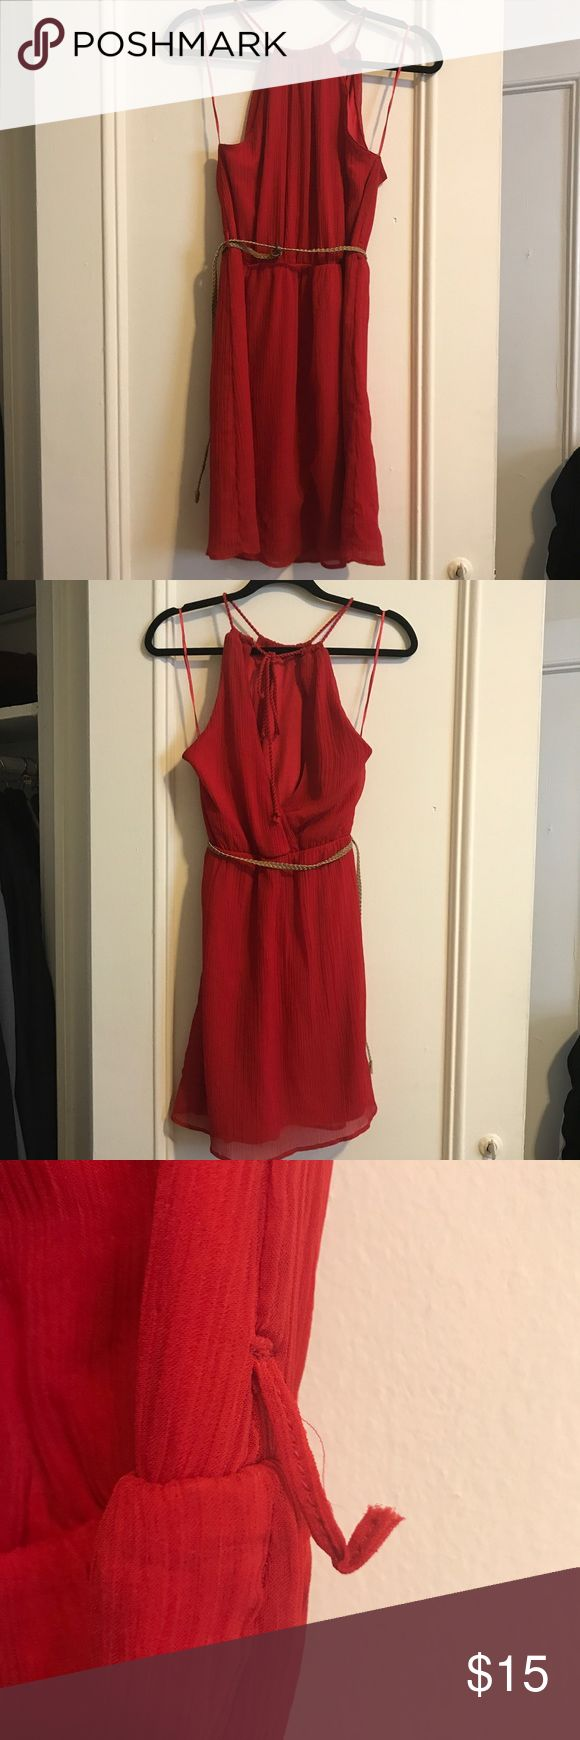 Zara red dress XS Zara red dress with thin braided belt. Front is a halter and back is a super cute v shape. Belt is included. One of the belt loops ripped but can be easily sown back on (shown in photos) Zara Dresses